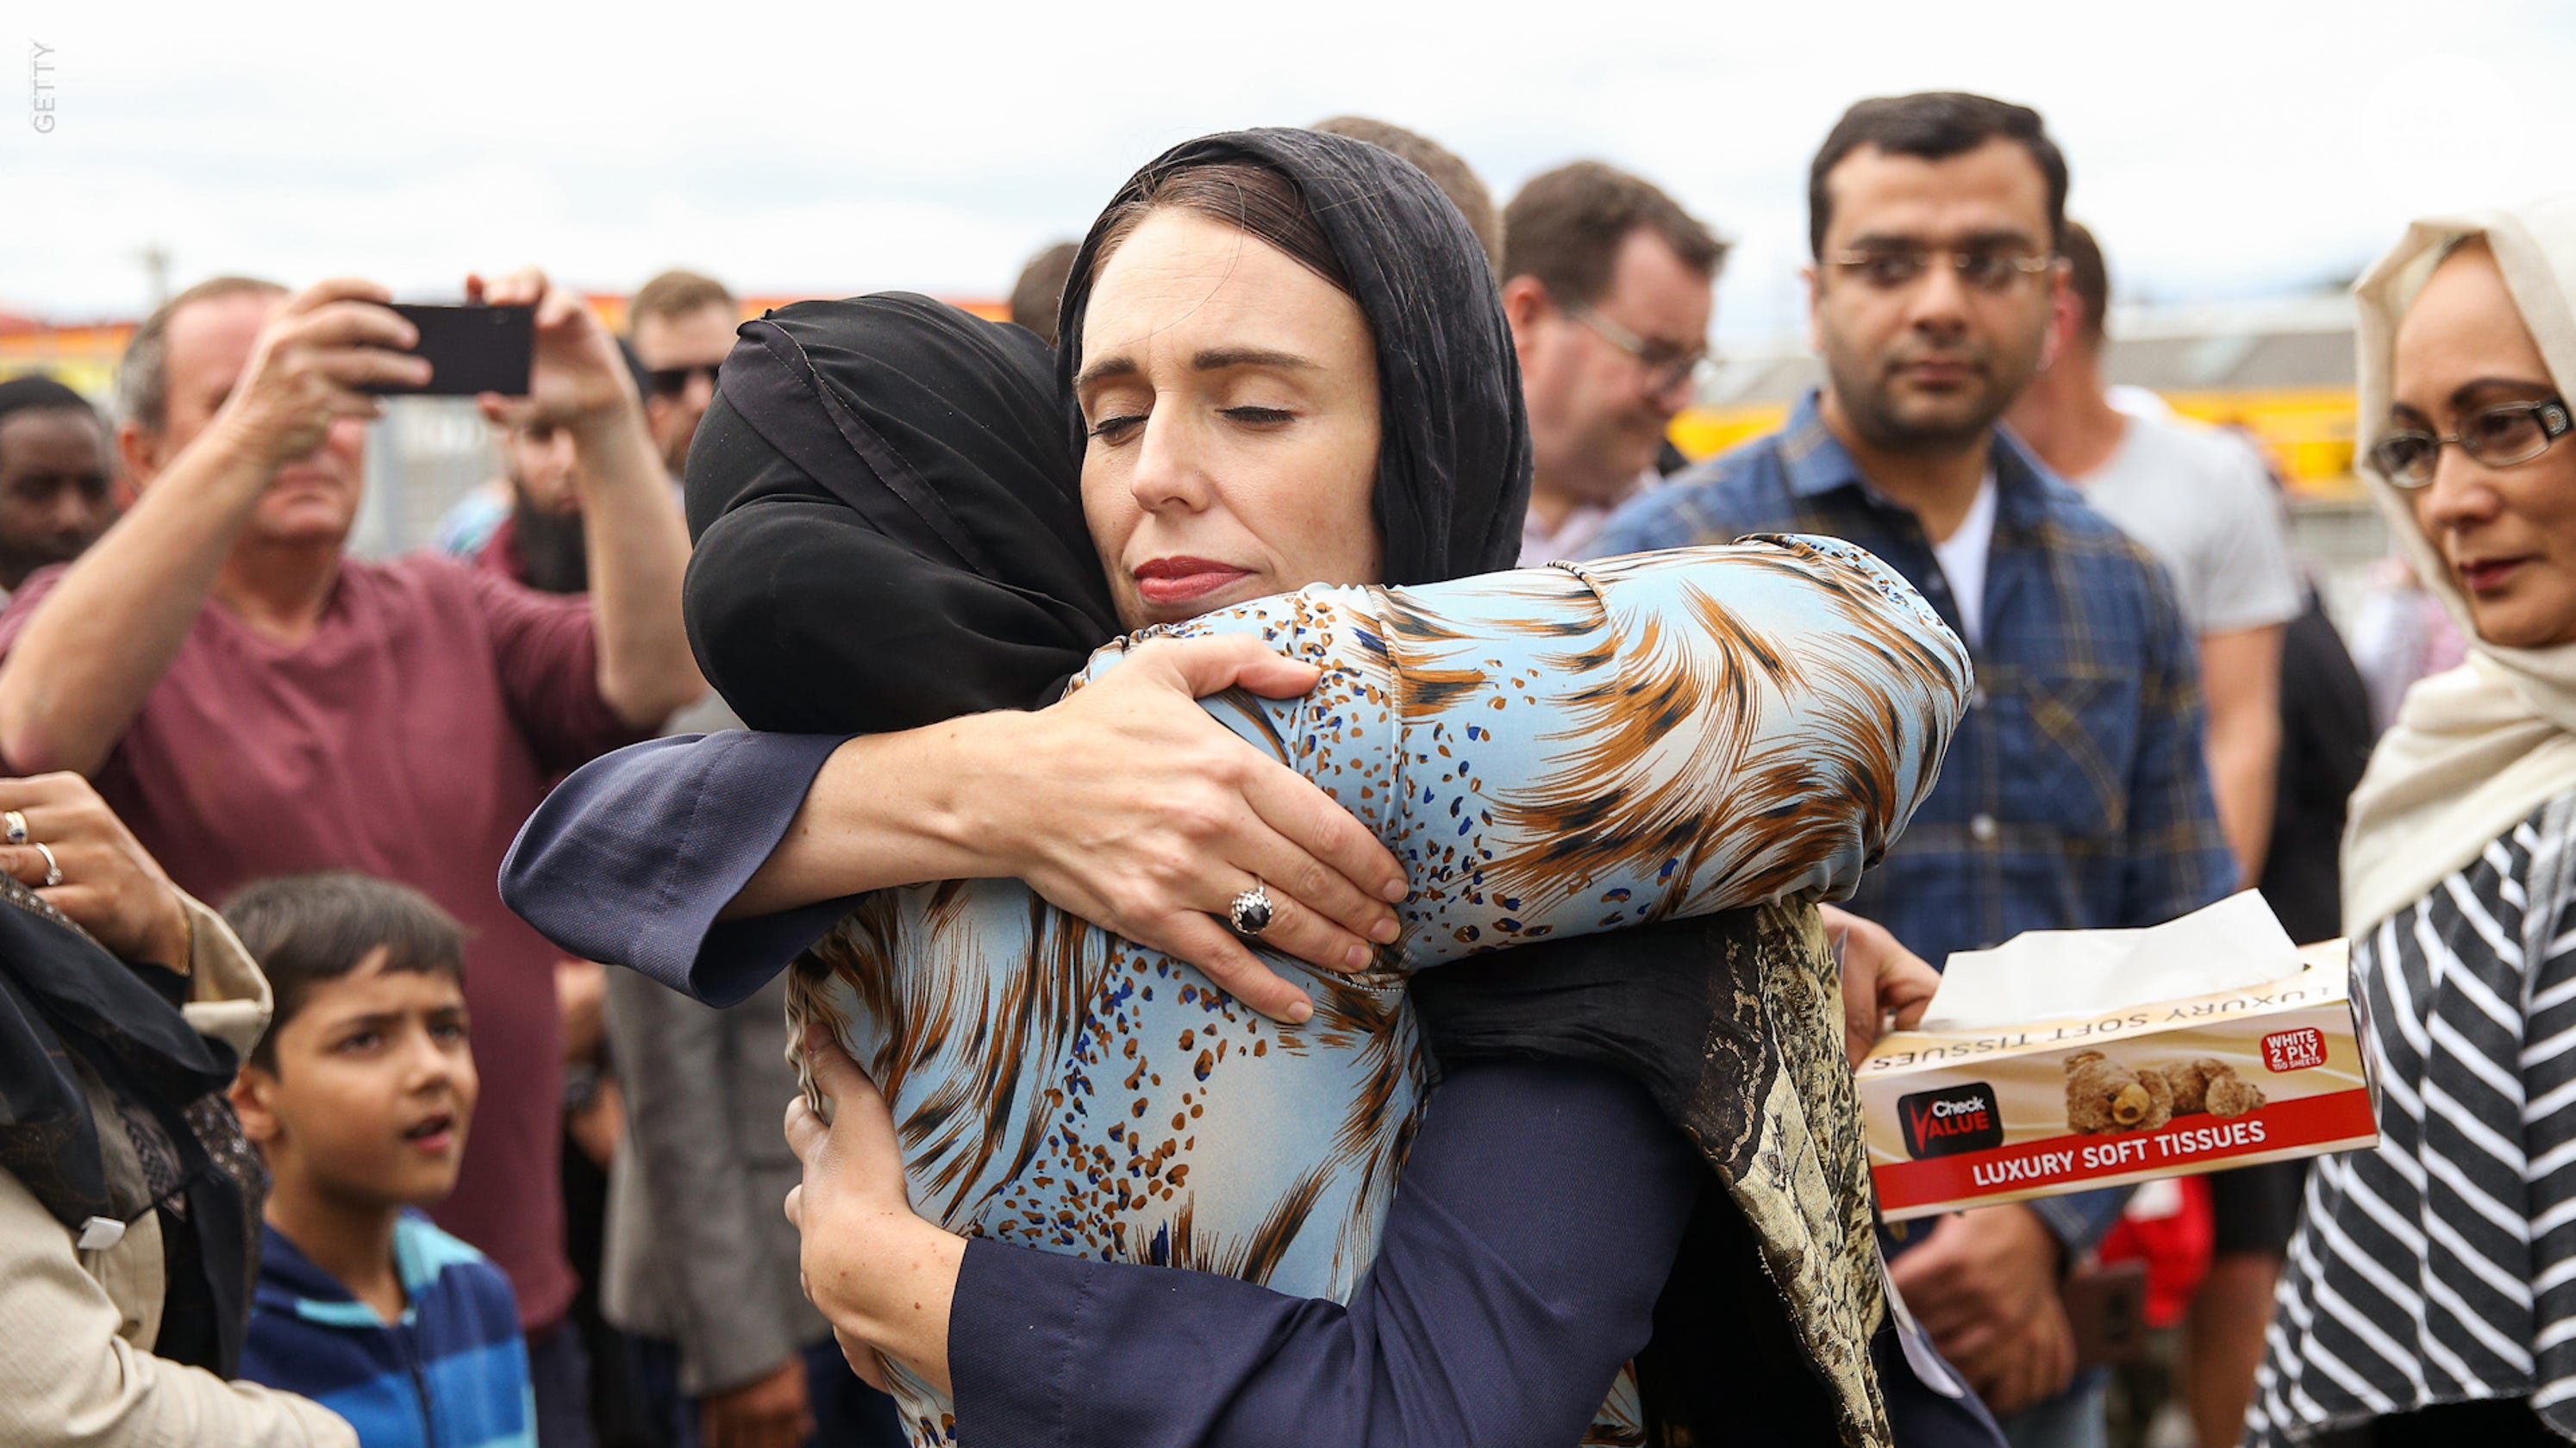 New Zealand bans terror suspect's racist manifesto; citizens told to 'destroy any copies'